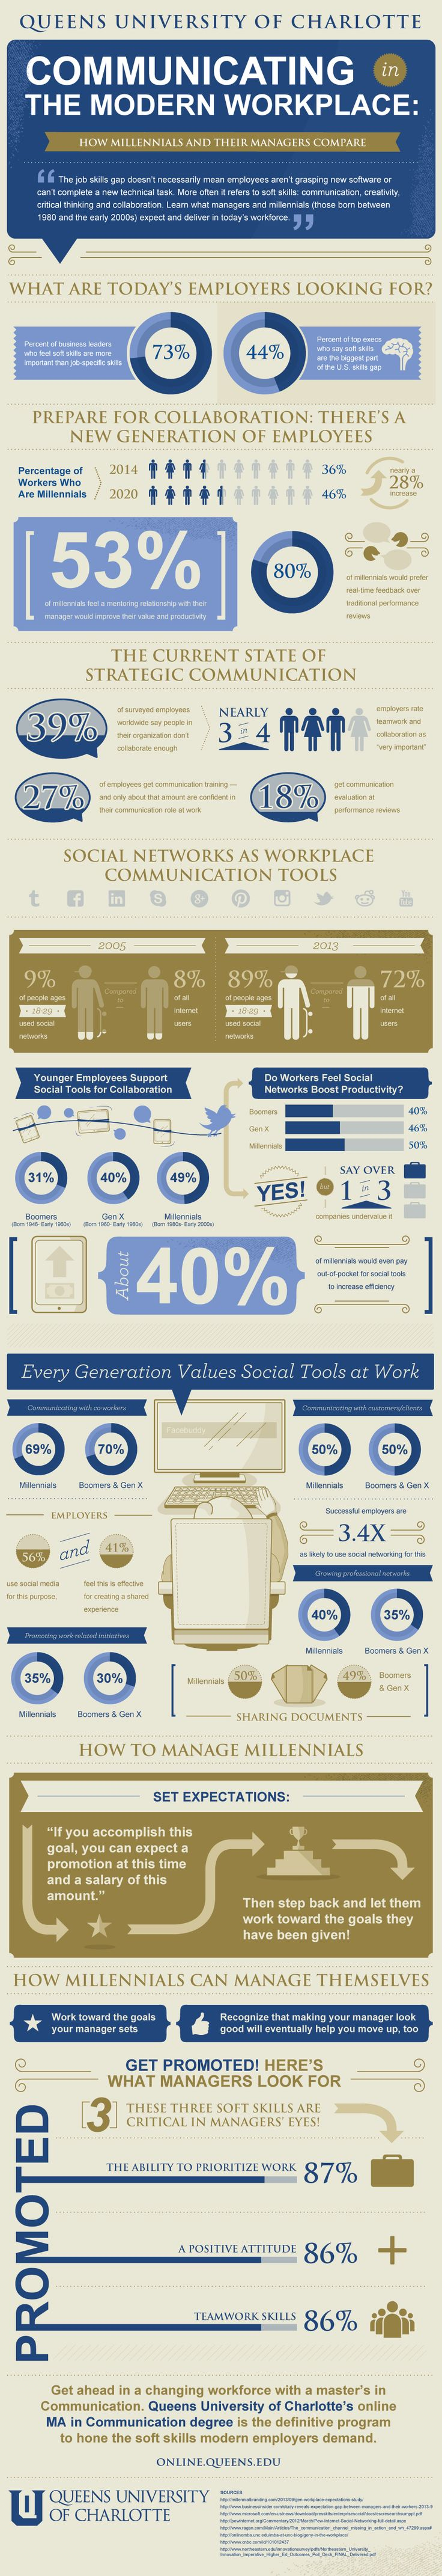 Communicating In The Modern Workplace #Infographic #Workplace